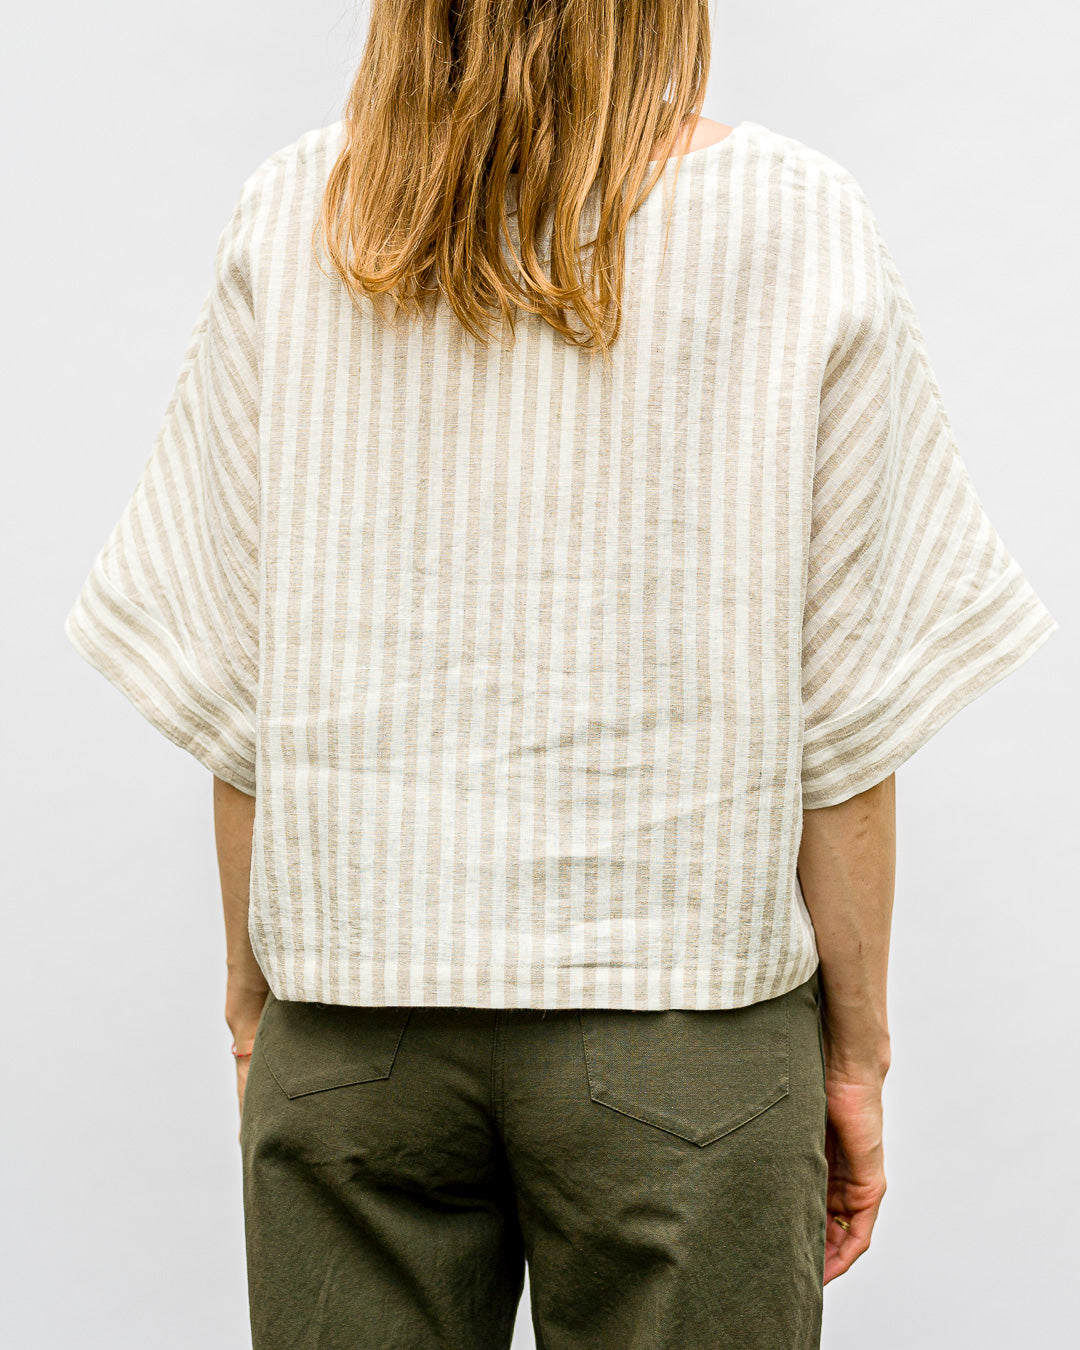 OFFON CLOTHING // Top Stripes Linen White Beige